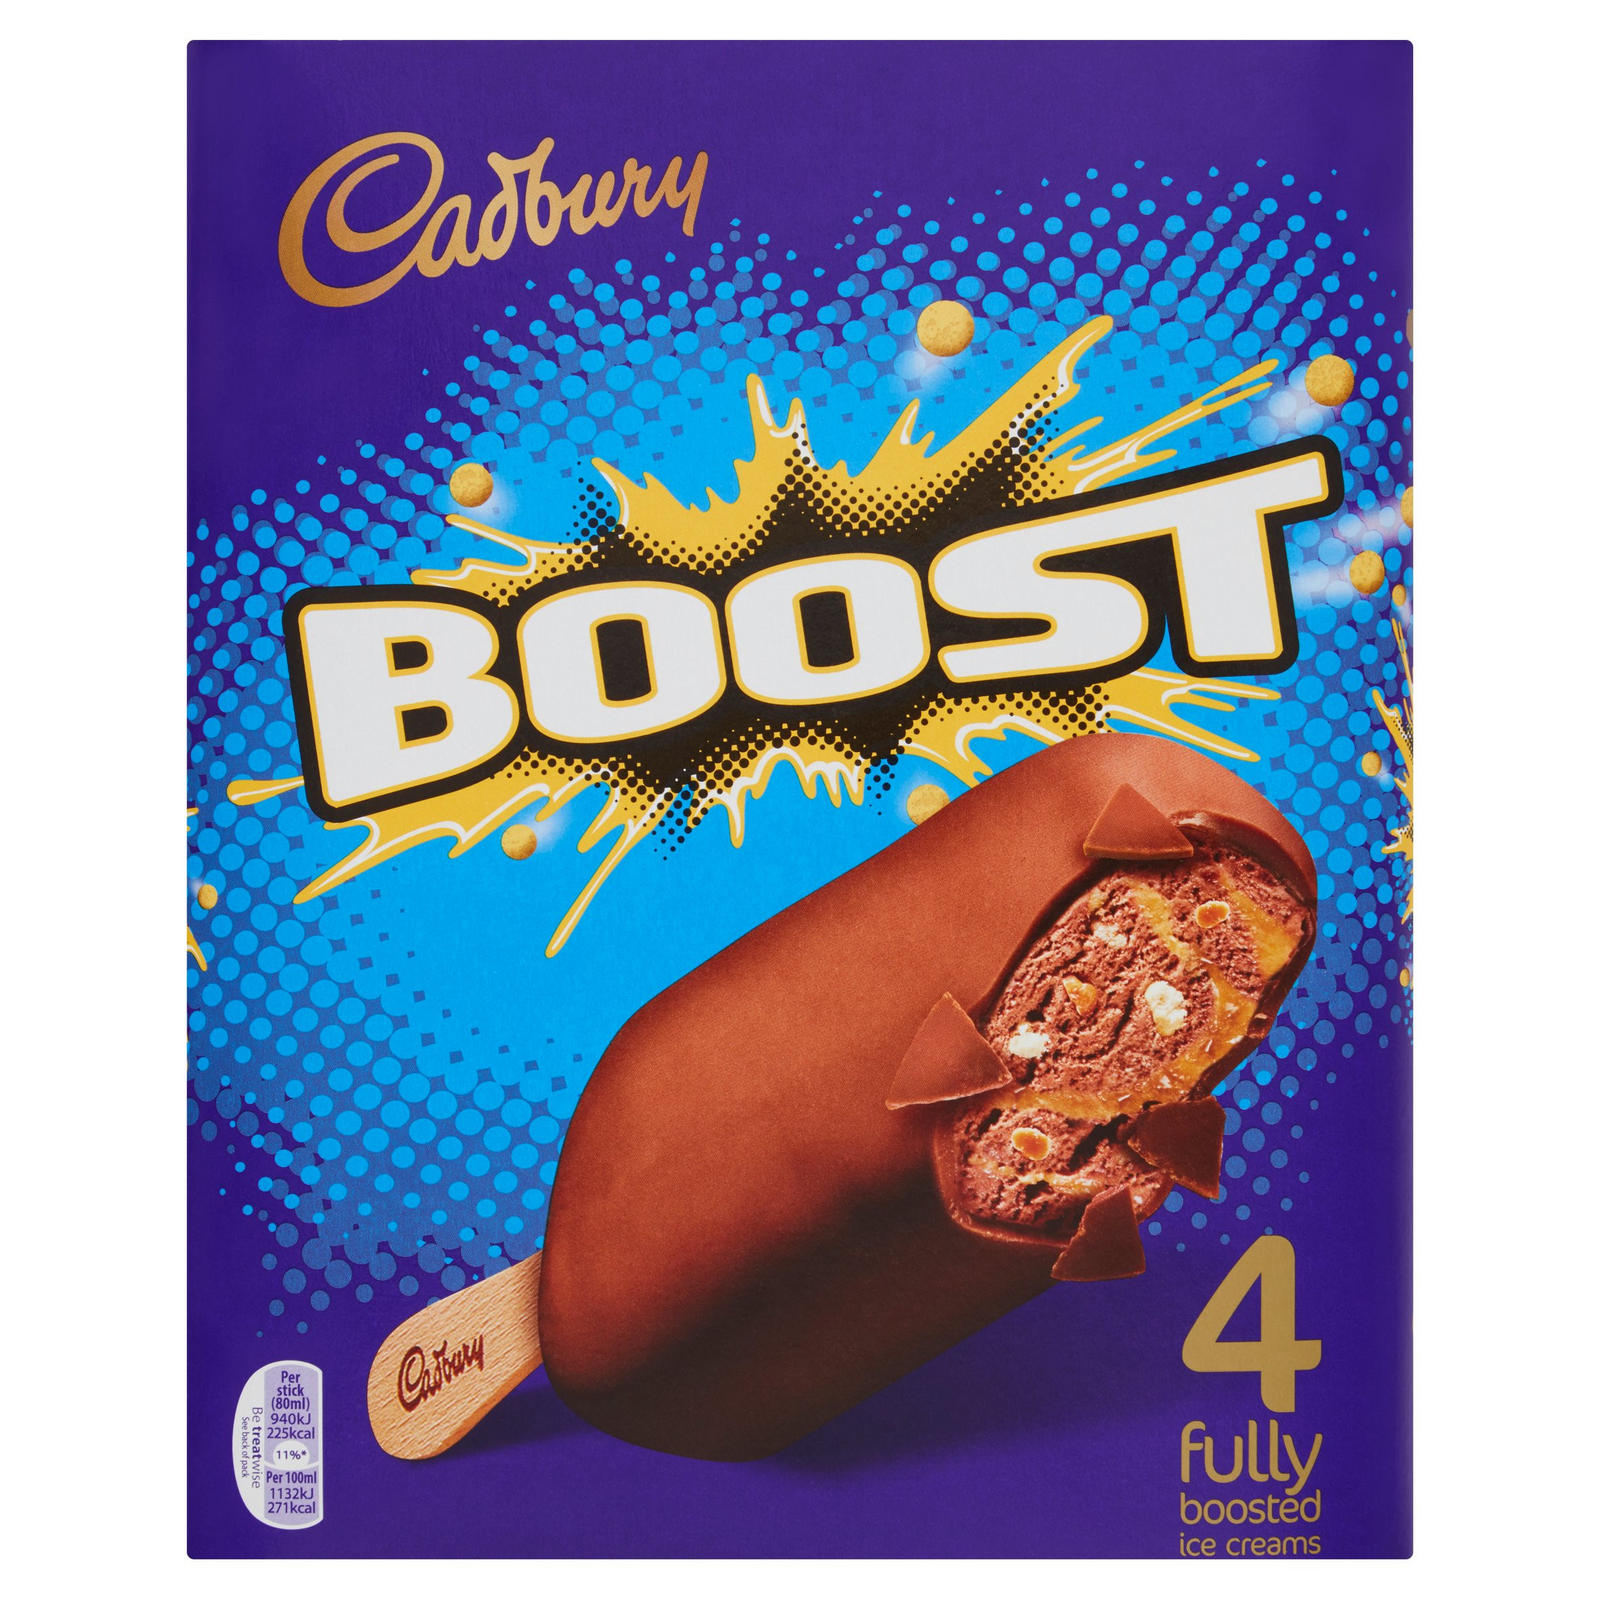 Cadbury Boost Fully Boosted Ice Creams 4 X 80ml 320ml